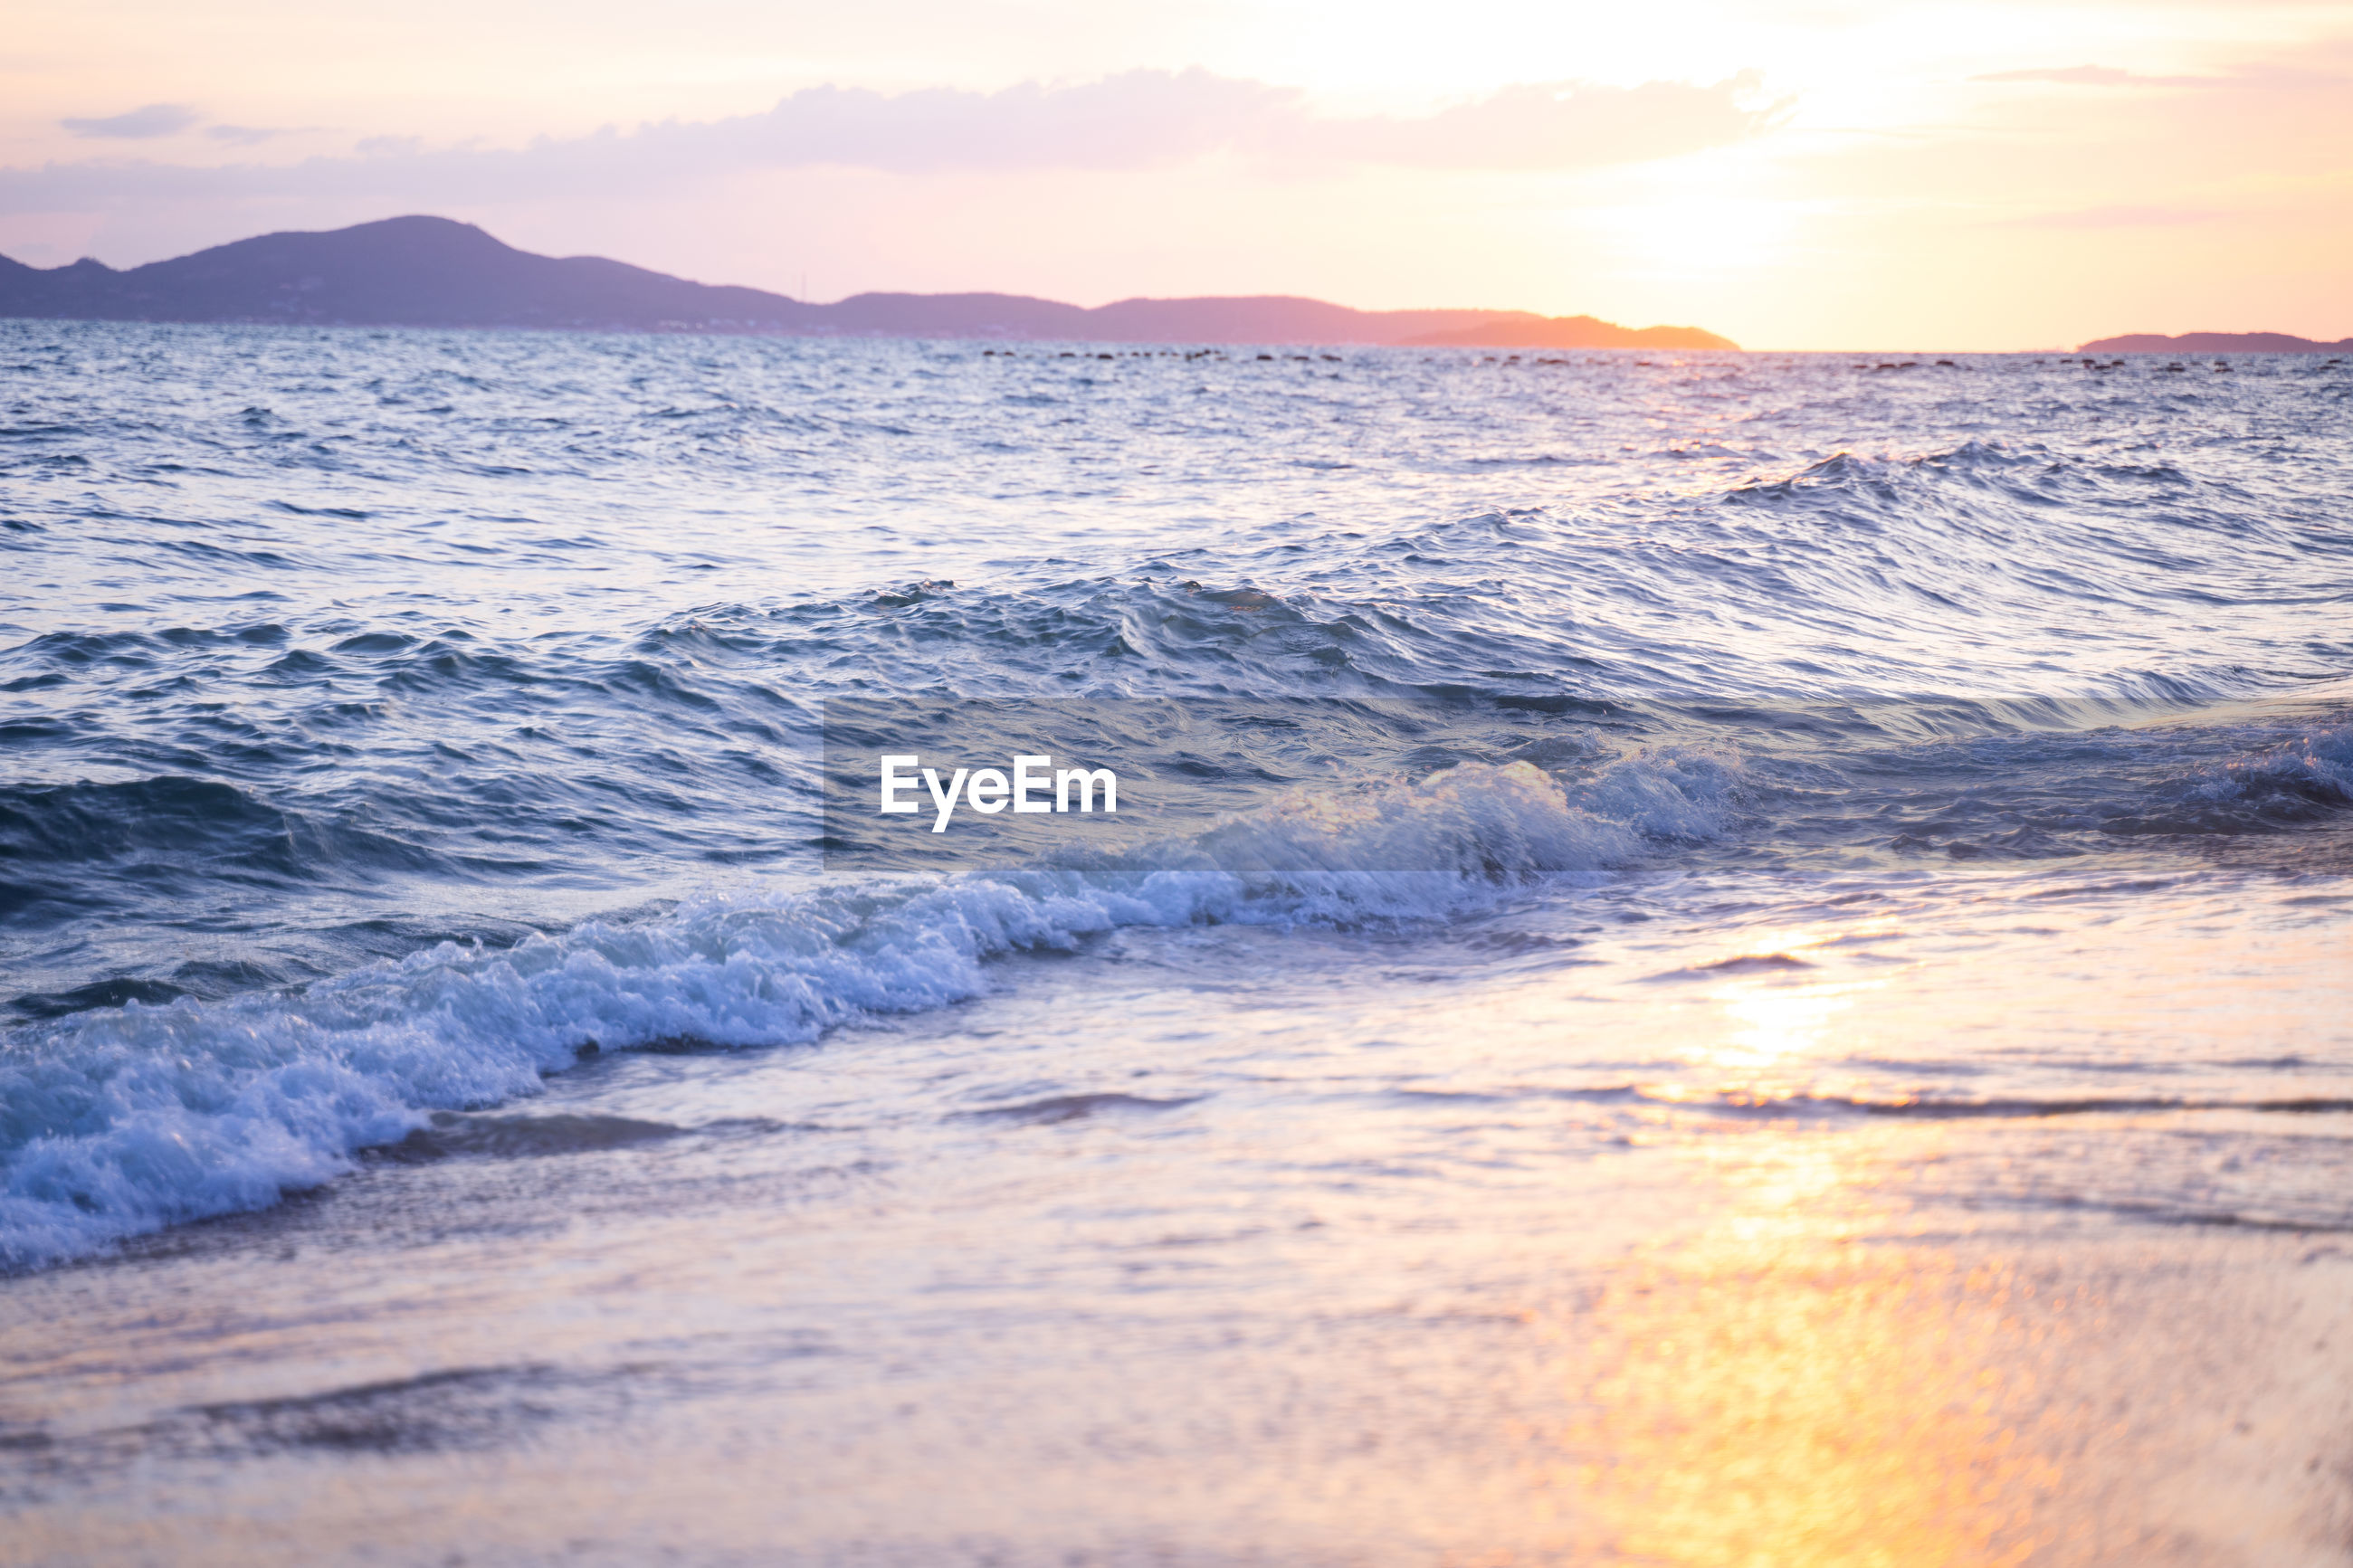 SCENIC VIEW OF SEA WAVES RUSHING TOWARDS SHORE DURING SUNSET